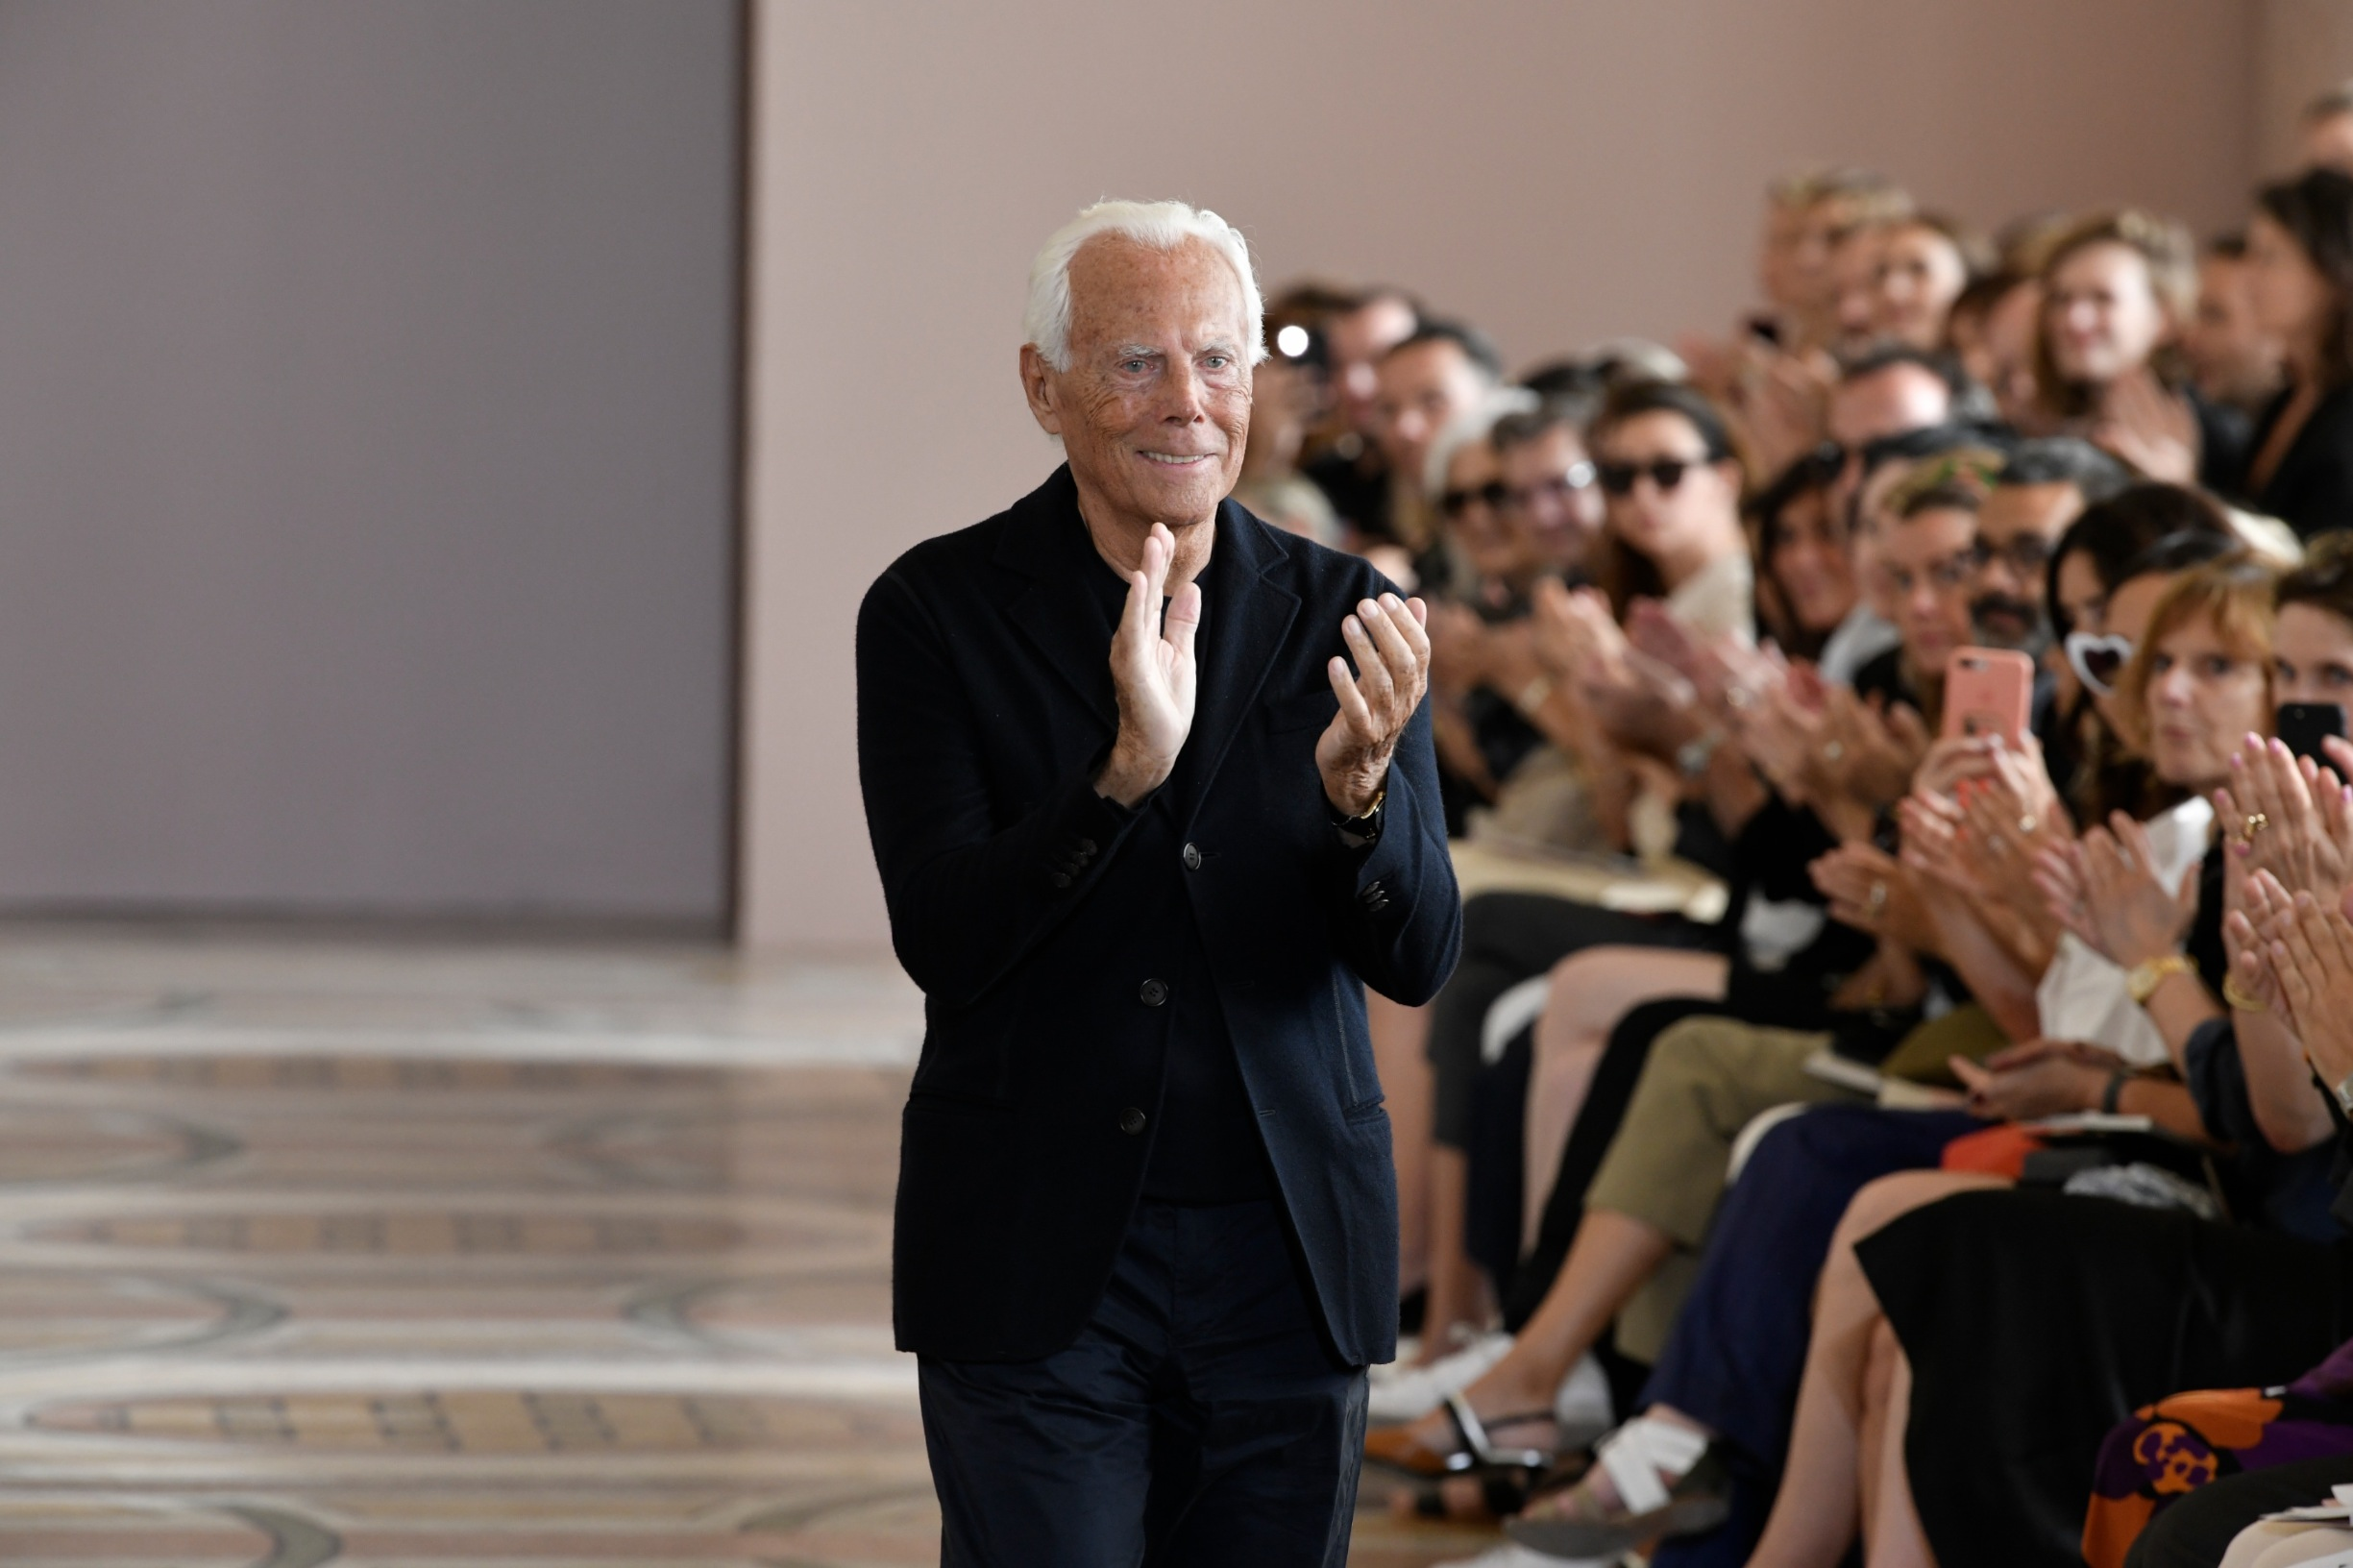 (190703) -- PARIS, July 3, 2019 () -- Designer Giorgio Armani salutes to audiences during Giorgio Armani Prive's Fall/Winter 2019/20 Haute Couture collections in Paris, France, July 2, 2019., Image: 453738059, License: Rights-managed, Restrictions: WORLD RIGHTS excluding China - Fee Payable Upon Reproduction - For queries contact Avalon.red - sales@avalon.red London: +44 (0) 20 7421 6000 Los Angeles: +1 (310) 822 0419 Berlin: +49 (0) 30 76 212 251, Model Release: no, Credit line: Xinhua/Avalon.red / Avalon Editorial / Profimedia